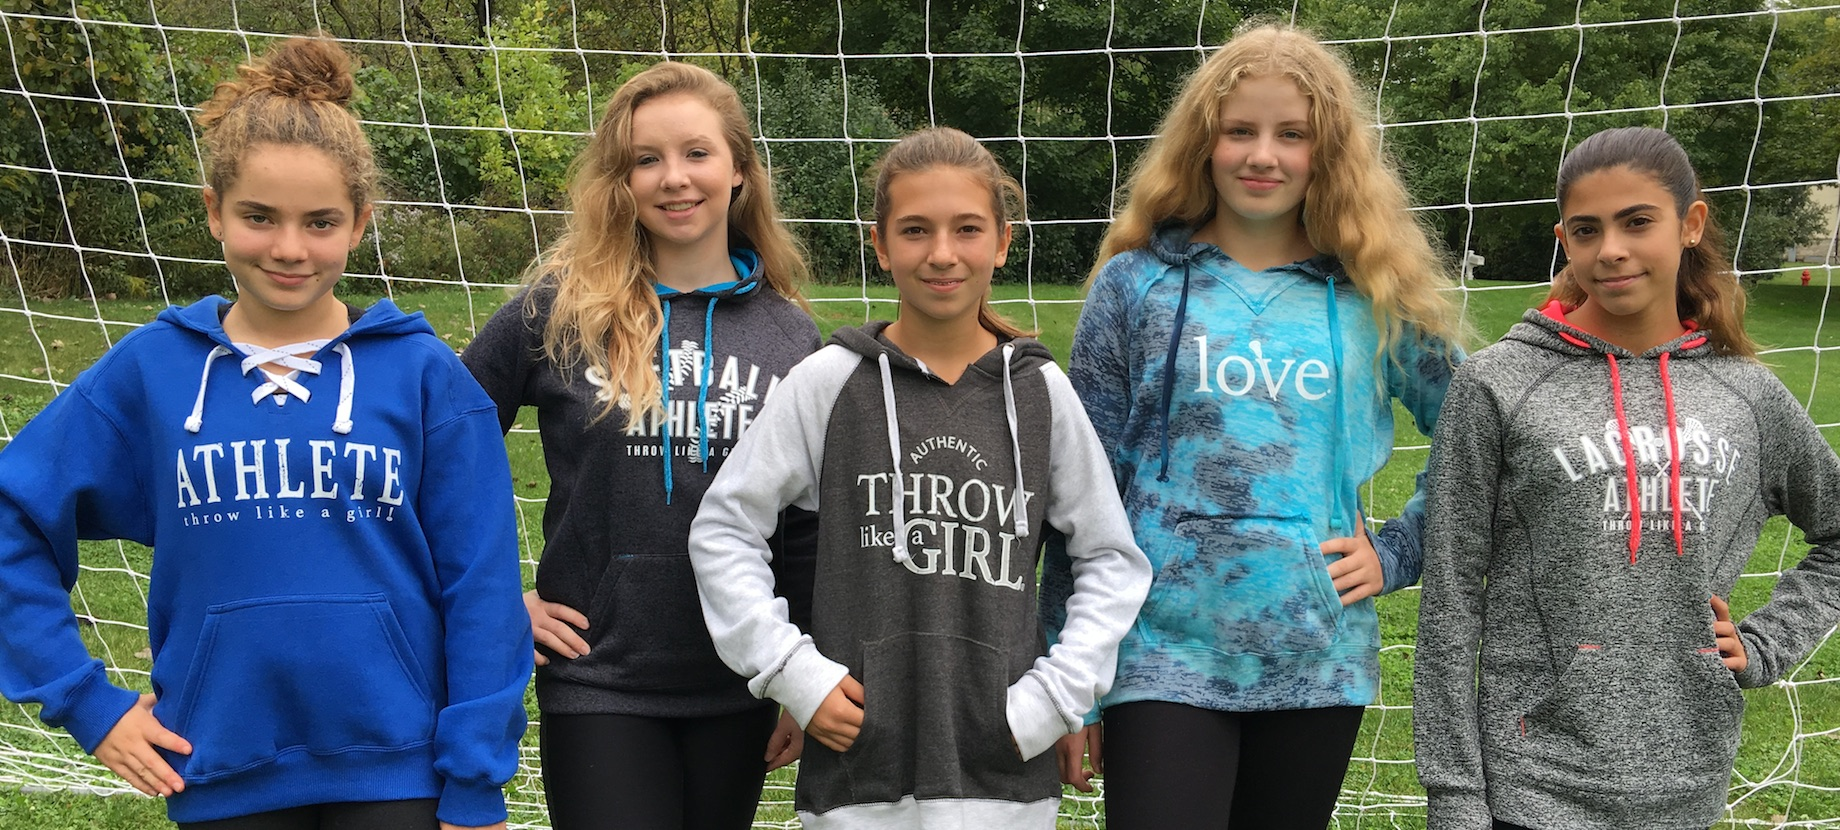 Top Lifestyle & Activewear Brand for Girl Athletes